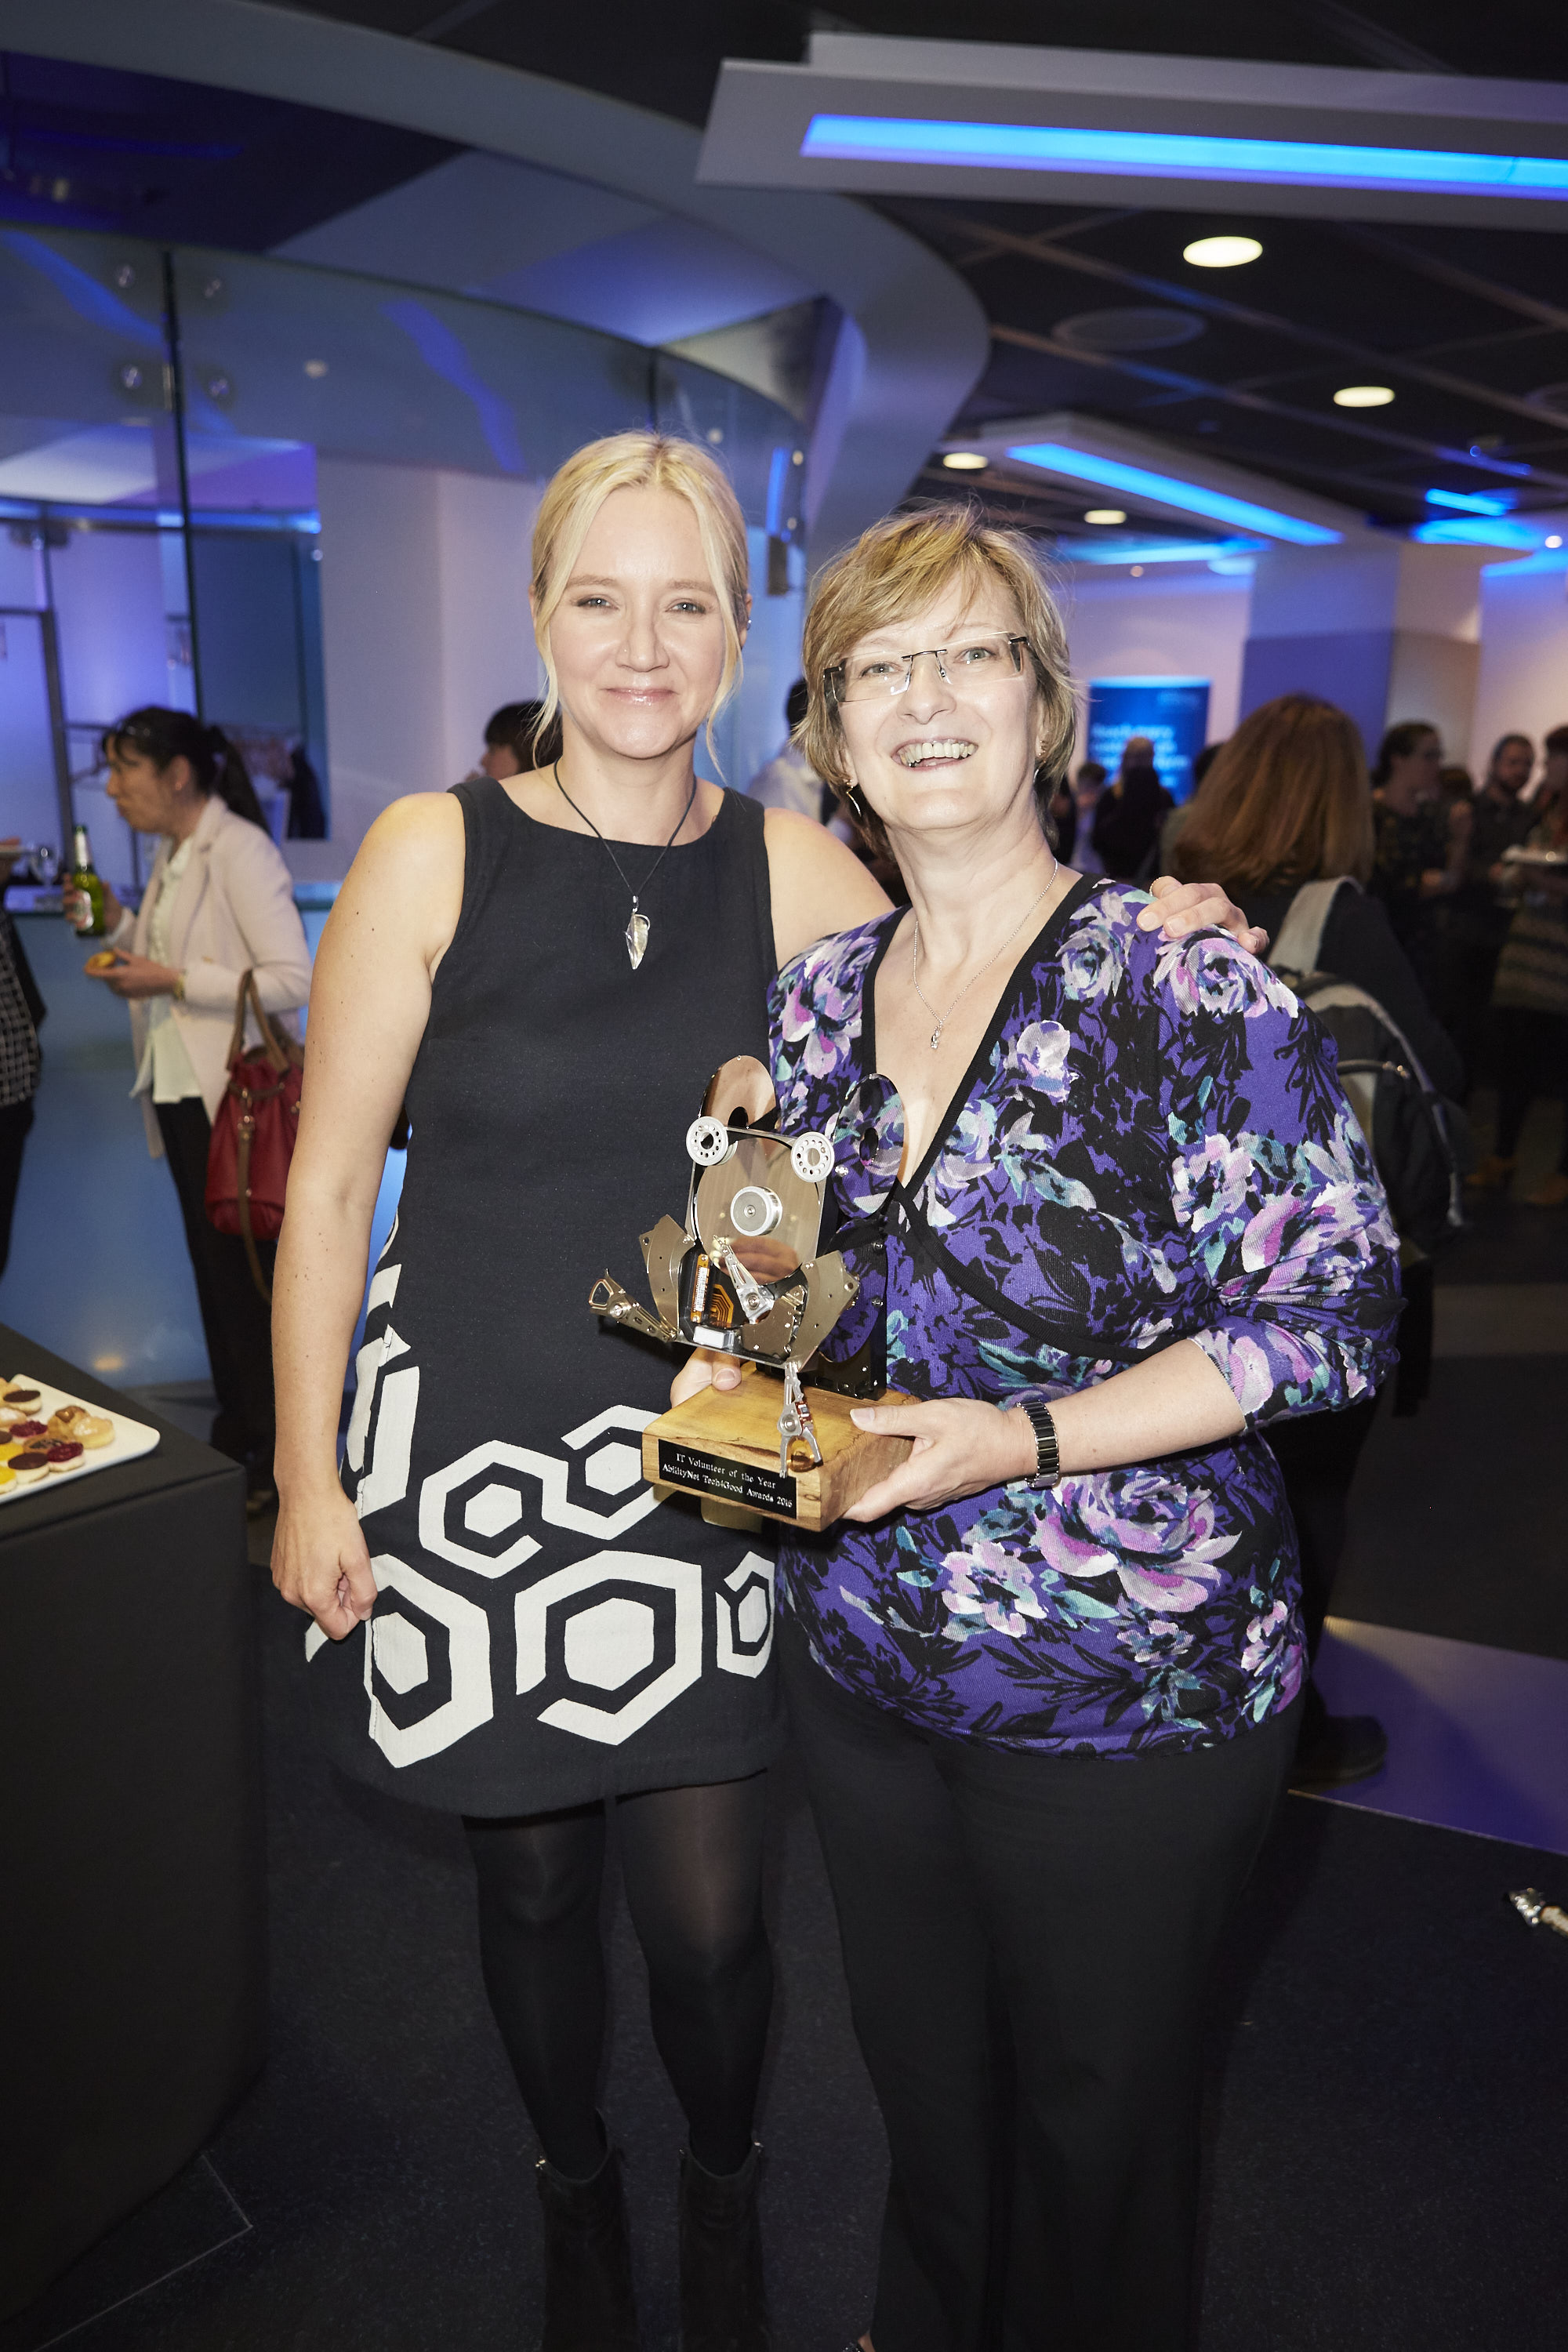 Kate Russell and T4G winner Maureen Johnson of Silver Line smiling at awards ceremony